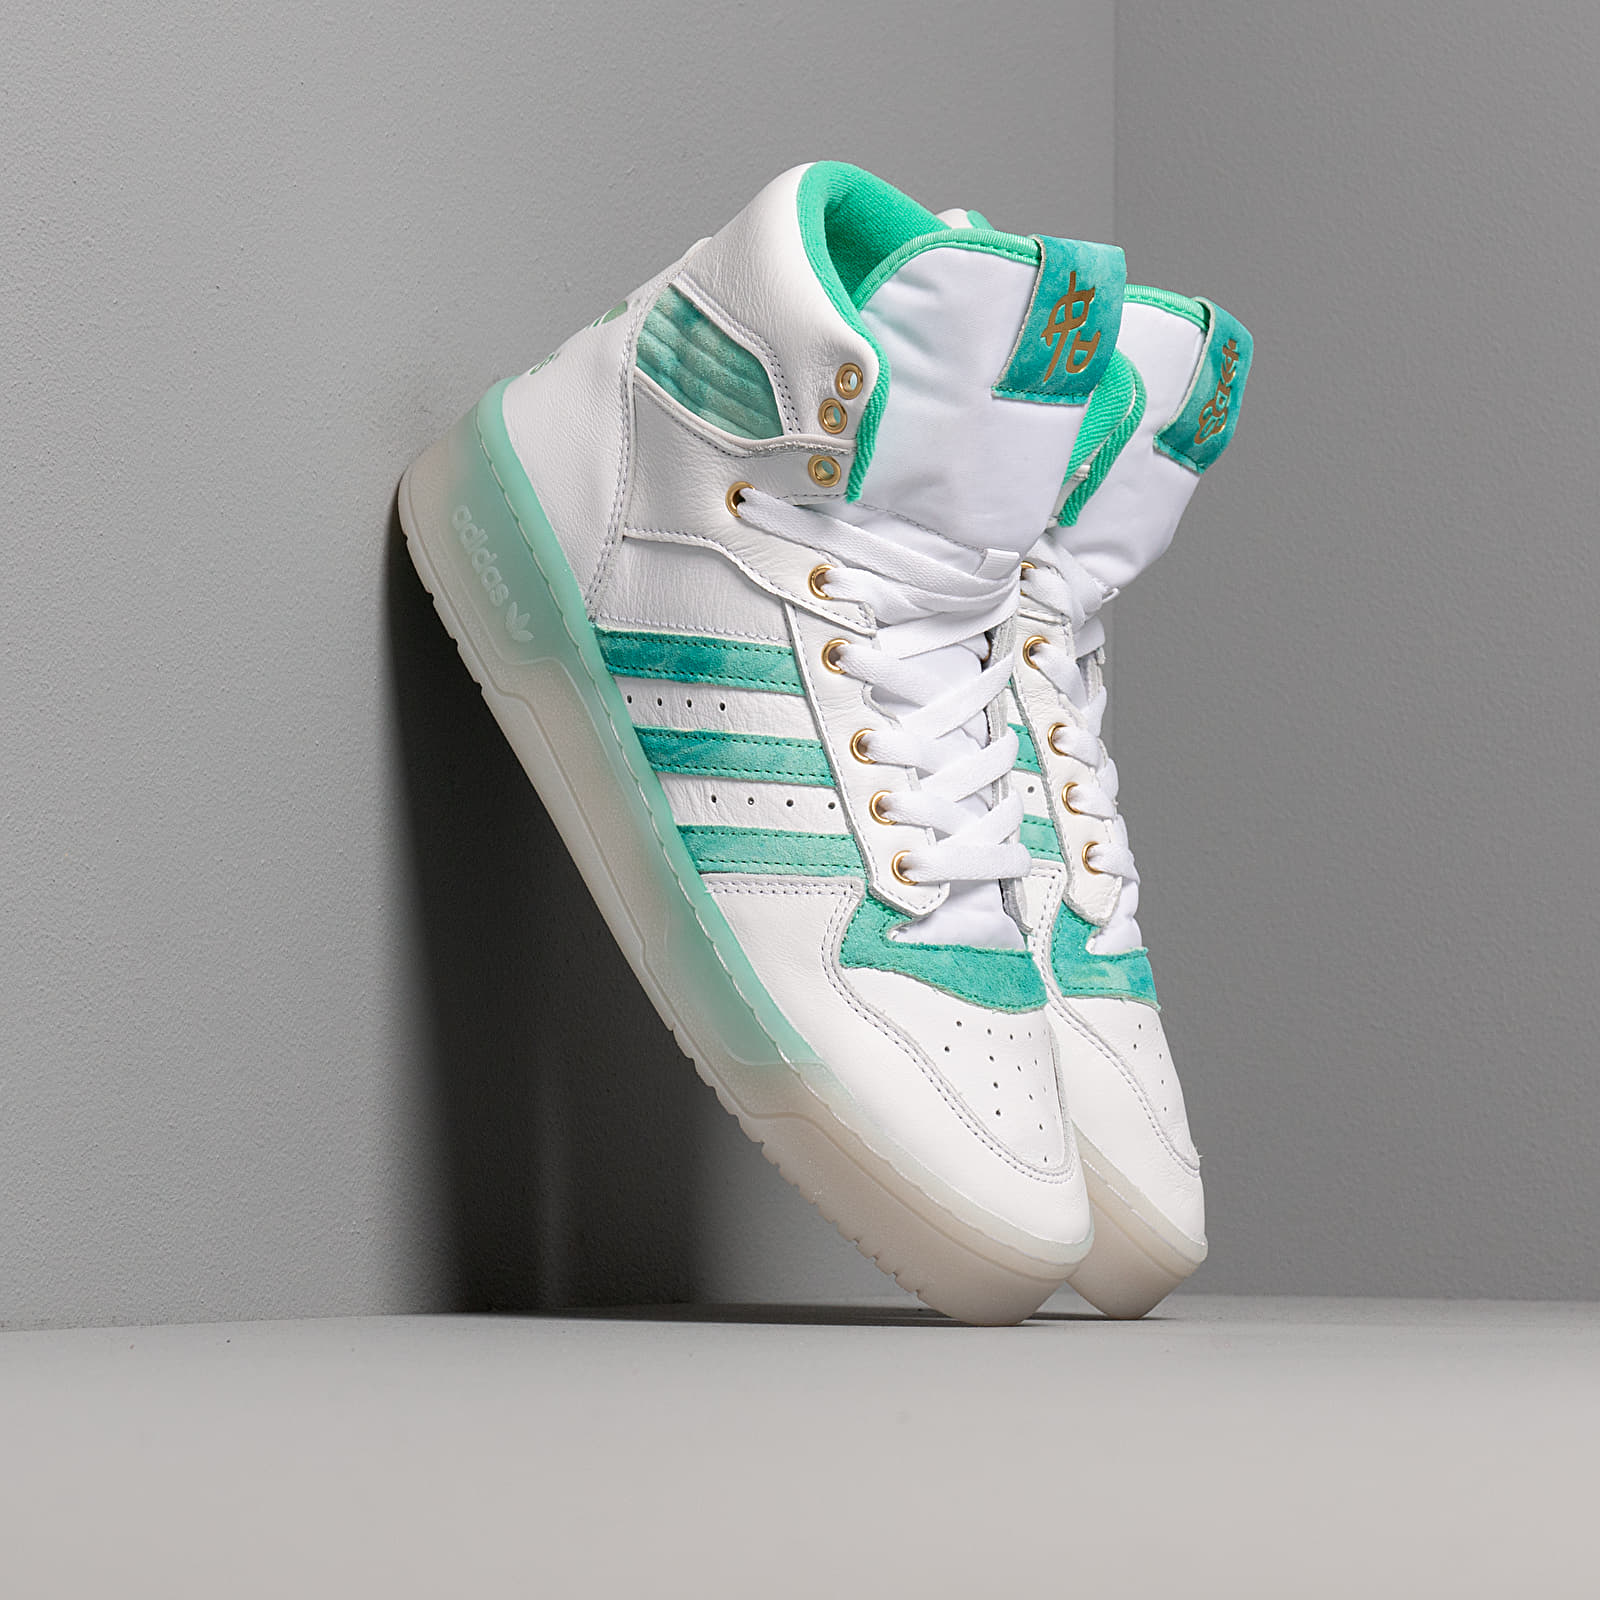 Pánske tenisky a topánky adidas Rivalry Ftwr White/ Hi-Res Green S18/ Gold Foil